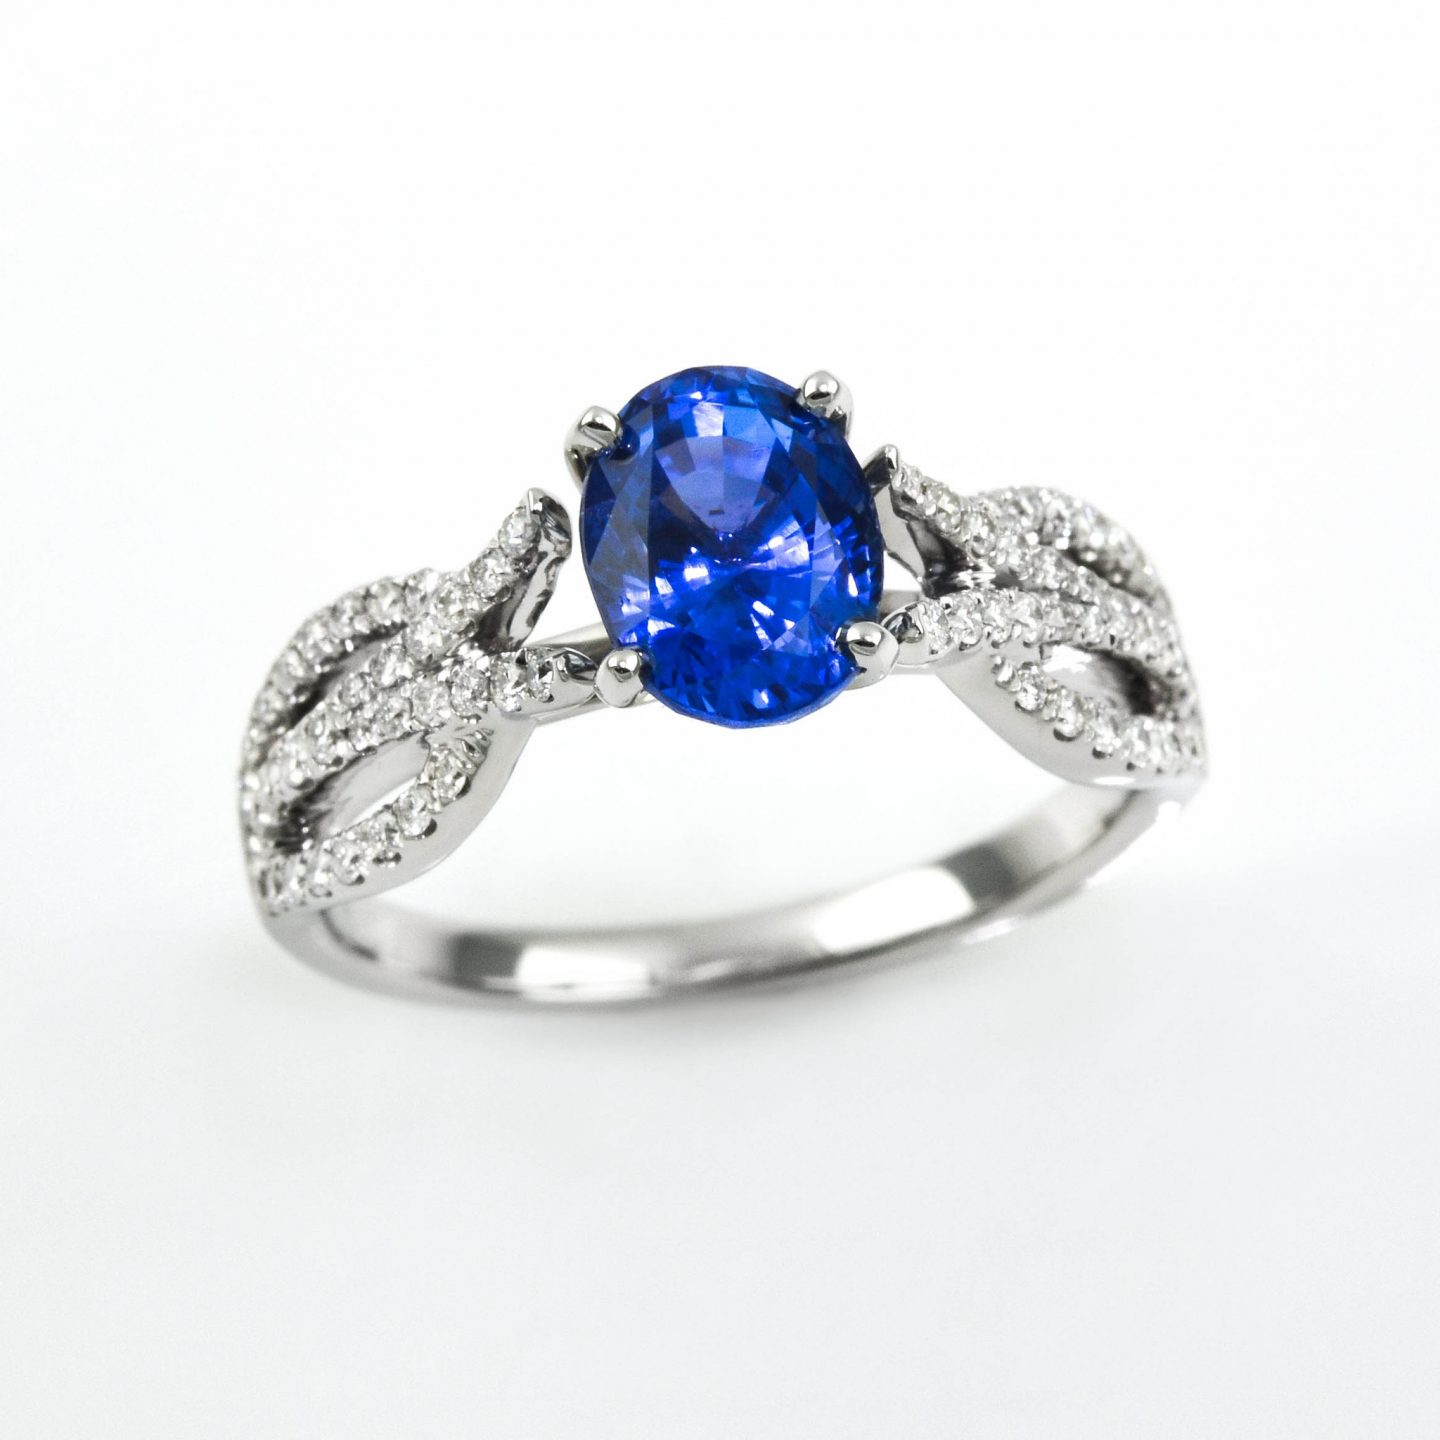 Color Gemstone Engagement Rings-How to Choose the Best One